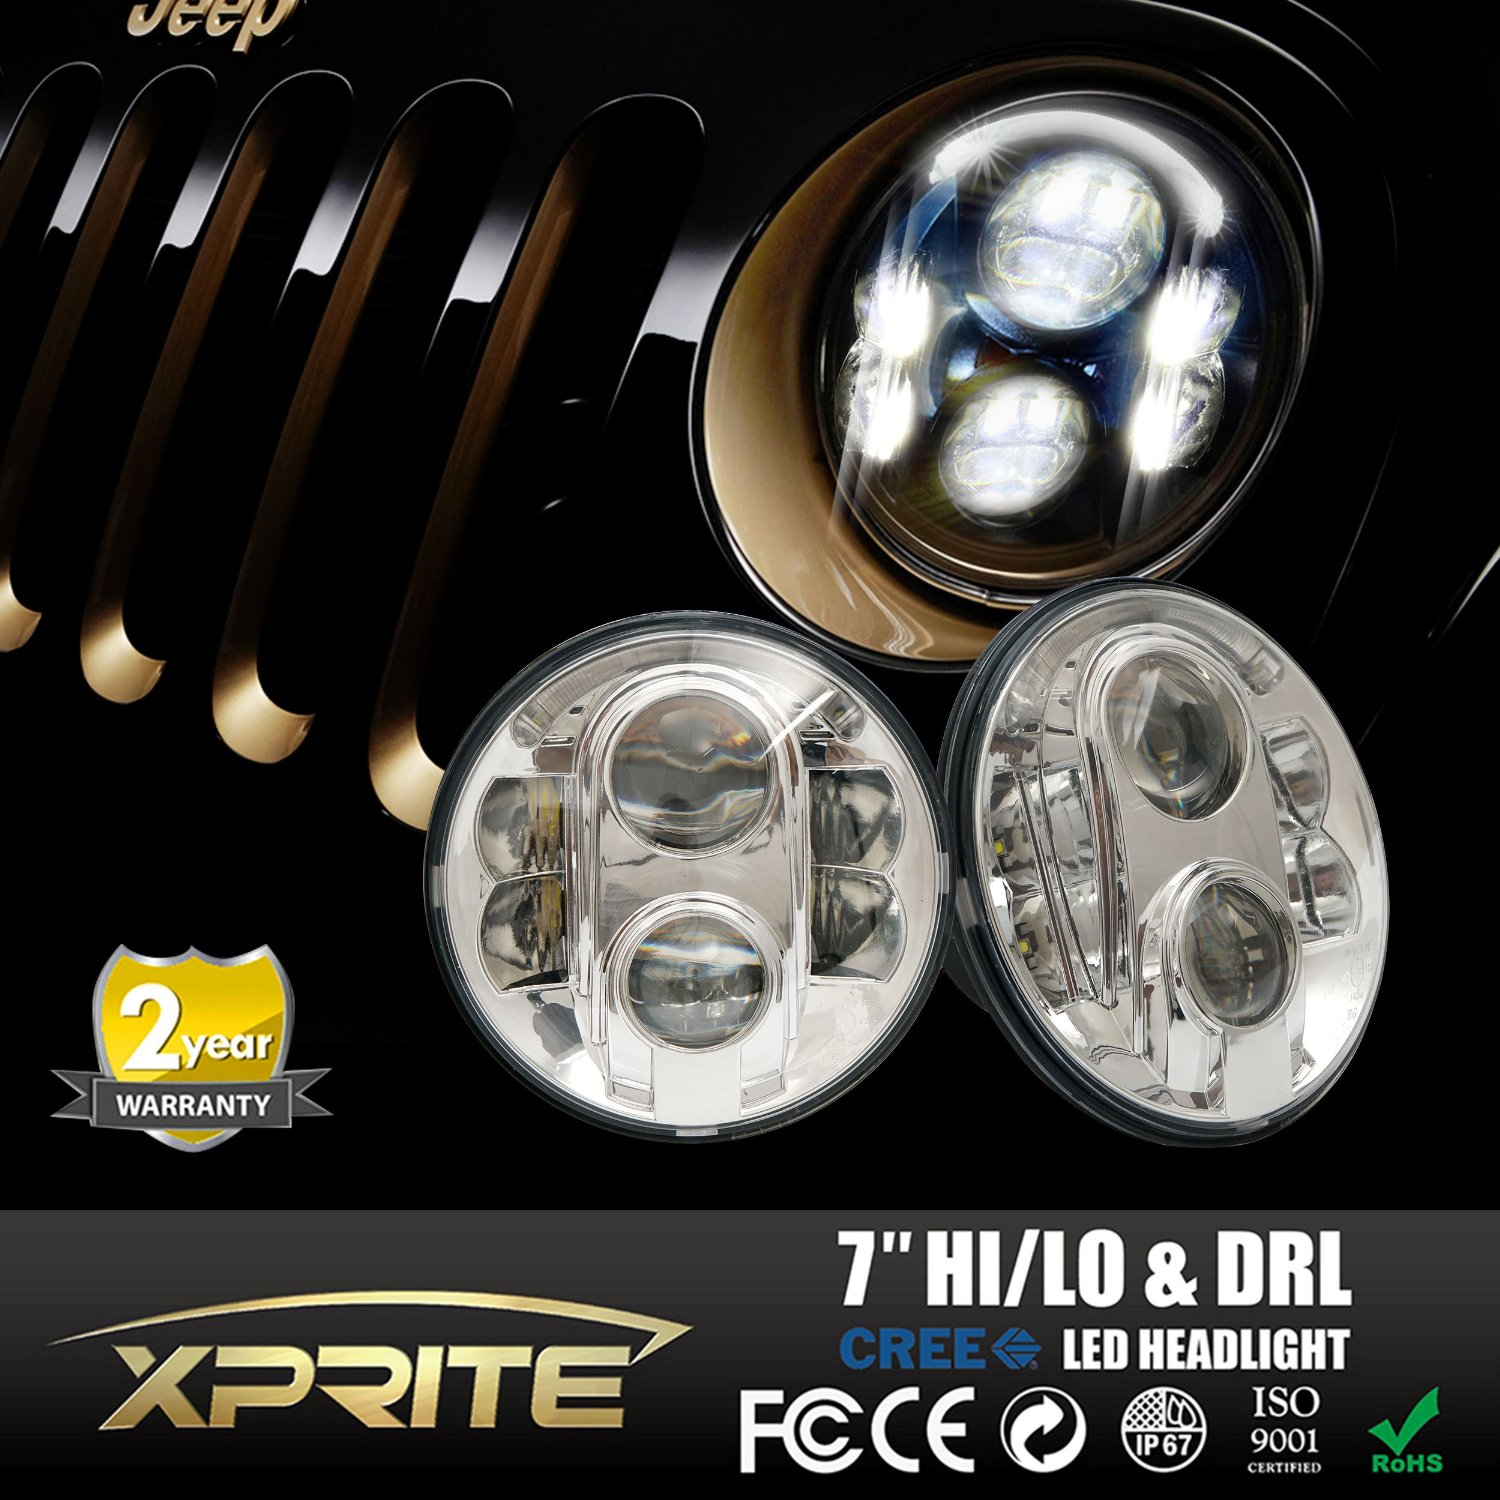 """Xprite 7"""" Inch Round 120W 10400 Lumens Hi/Lo Beam 10W Cree XT-E Chip LED Chrome Headlights With Halo Ring Angel Eyes Crystal DRL For Jeep Wrangler Offroad Vehicles"""